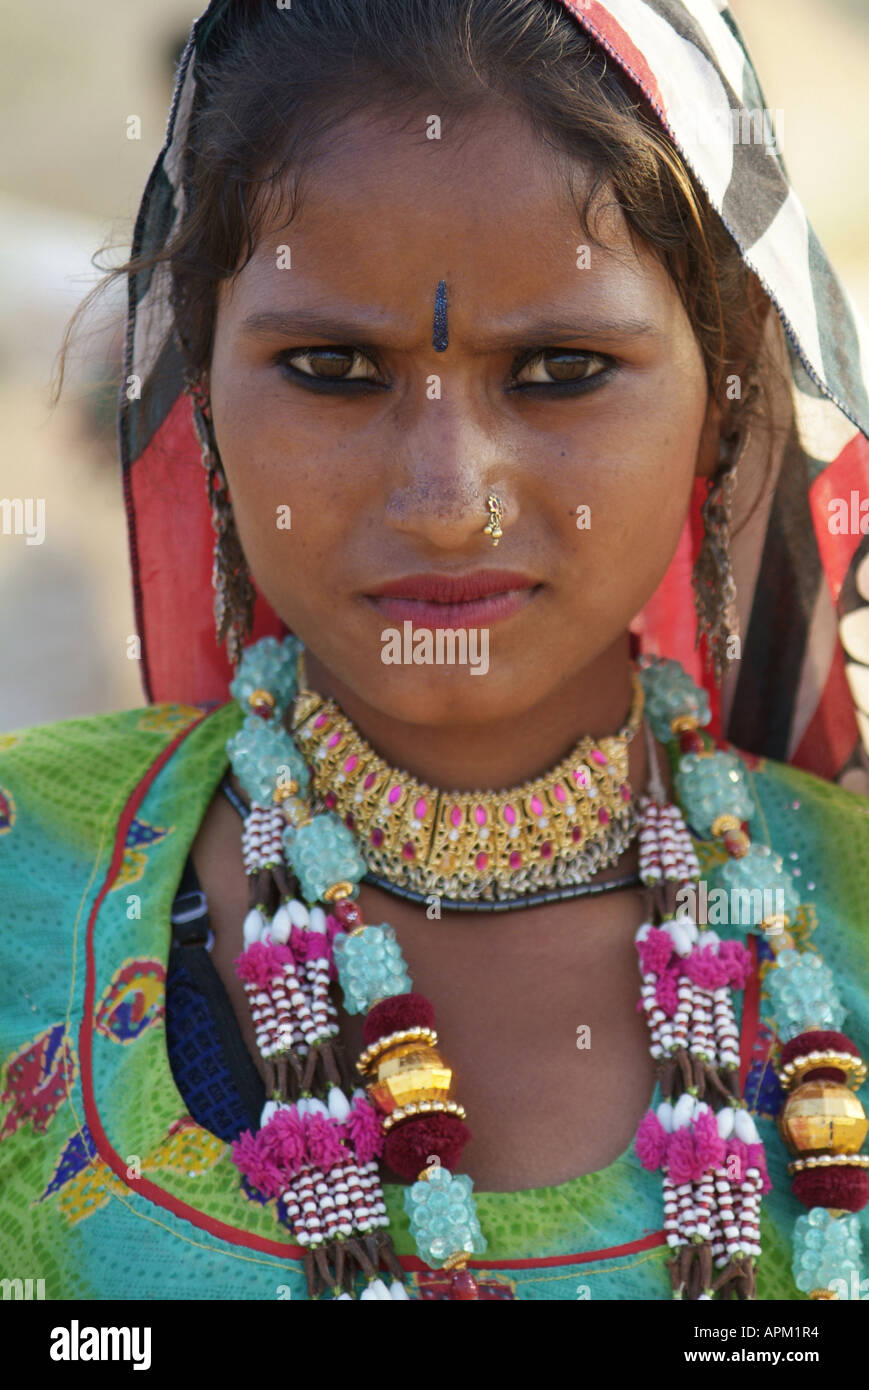 Portrait of a woman in traditional Rajasthani dress, India Stock Photo